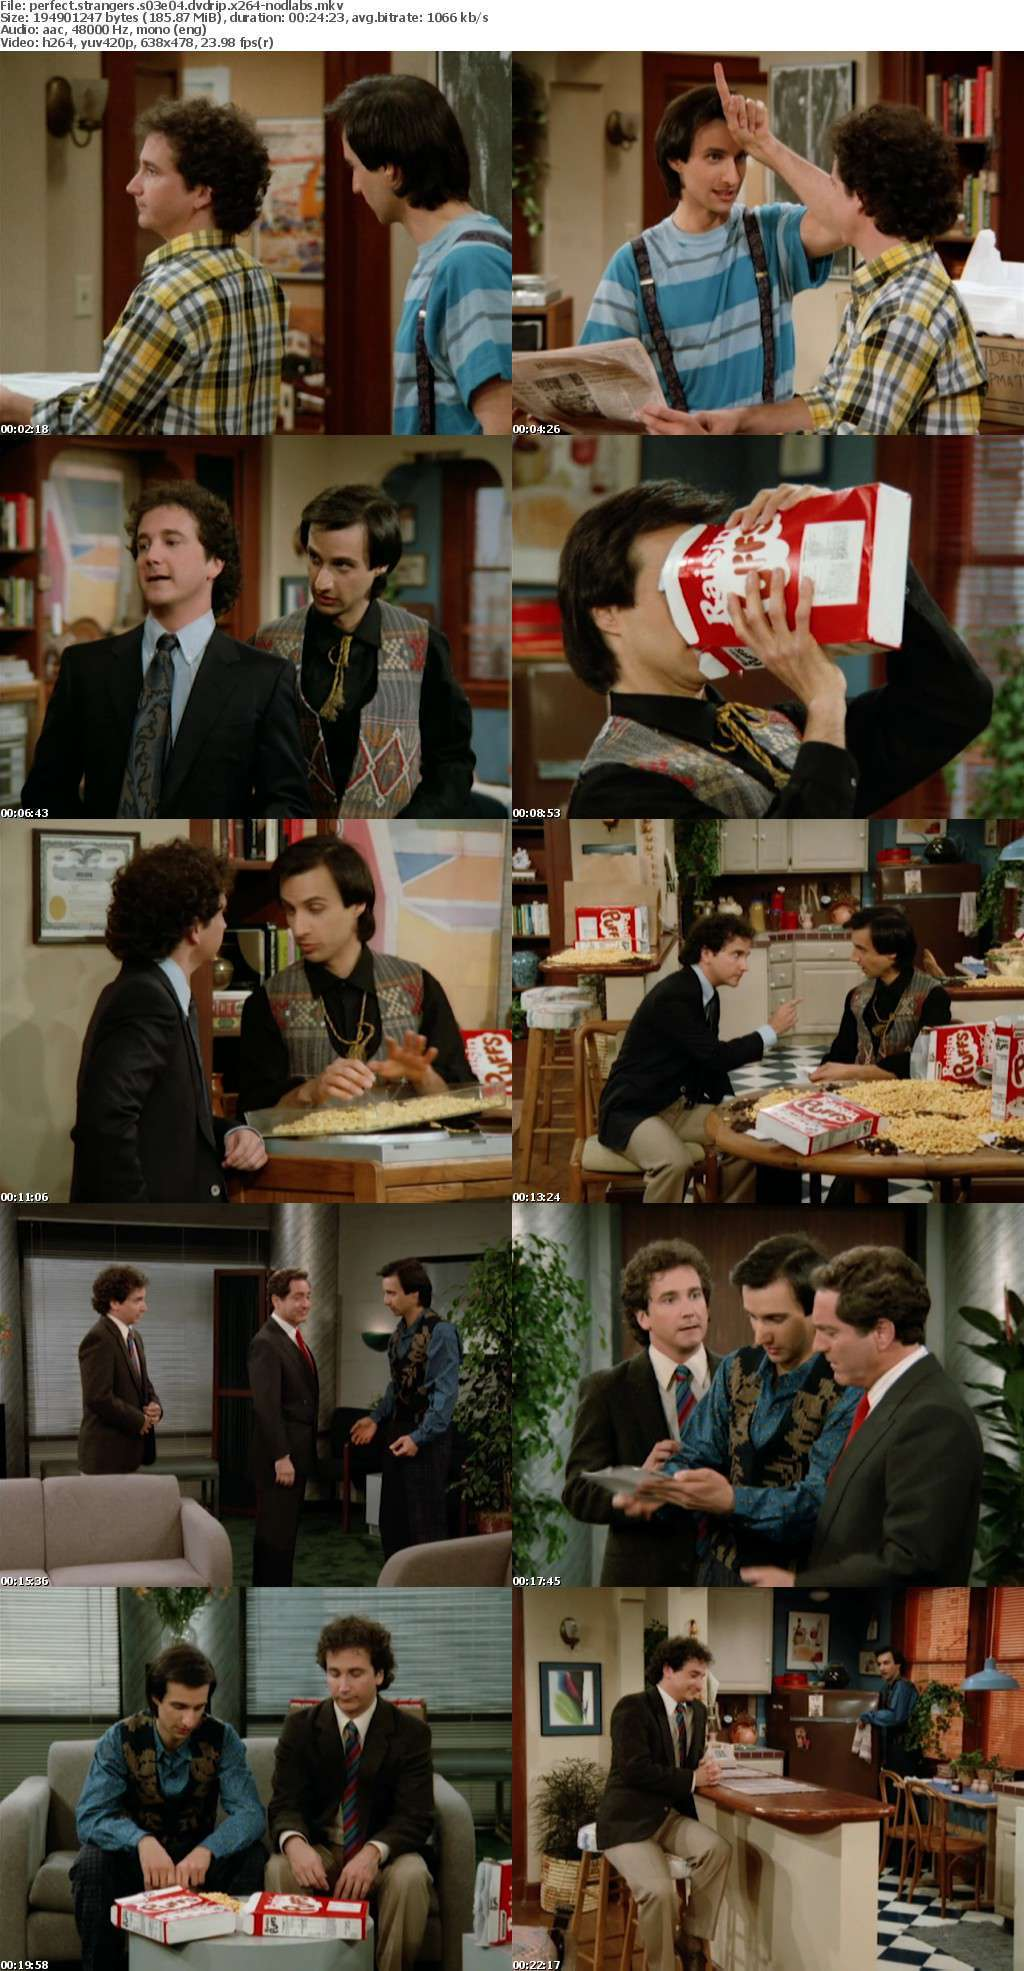 Perfect Strangers S03 DVDRip x264-NODLABS